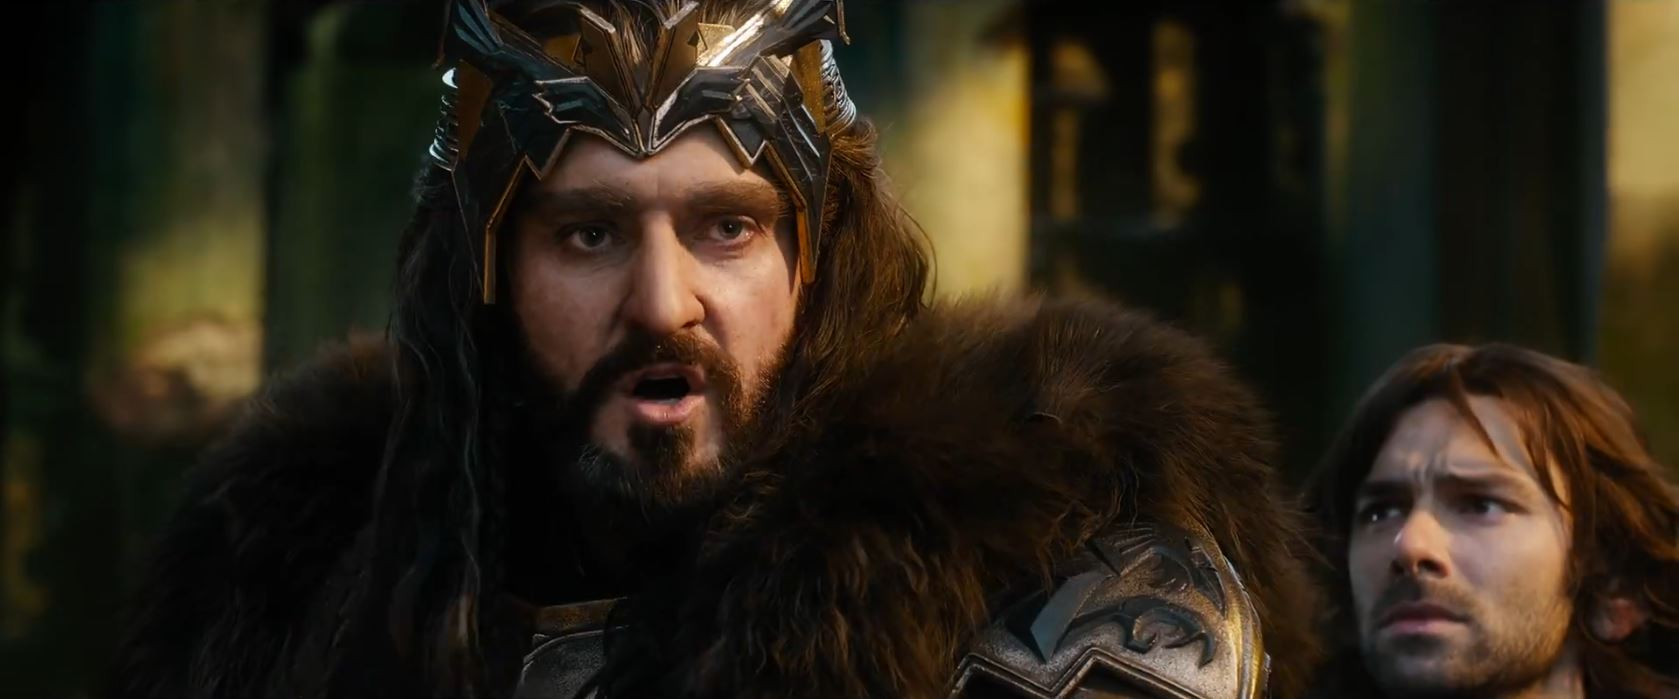 The Hobbit The Battle of the Five Armies Trailer - Thorin Oakenshield